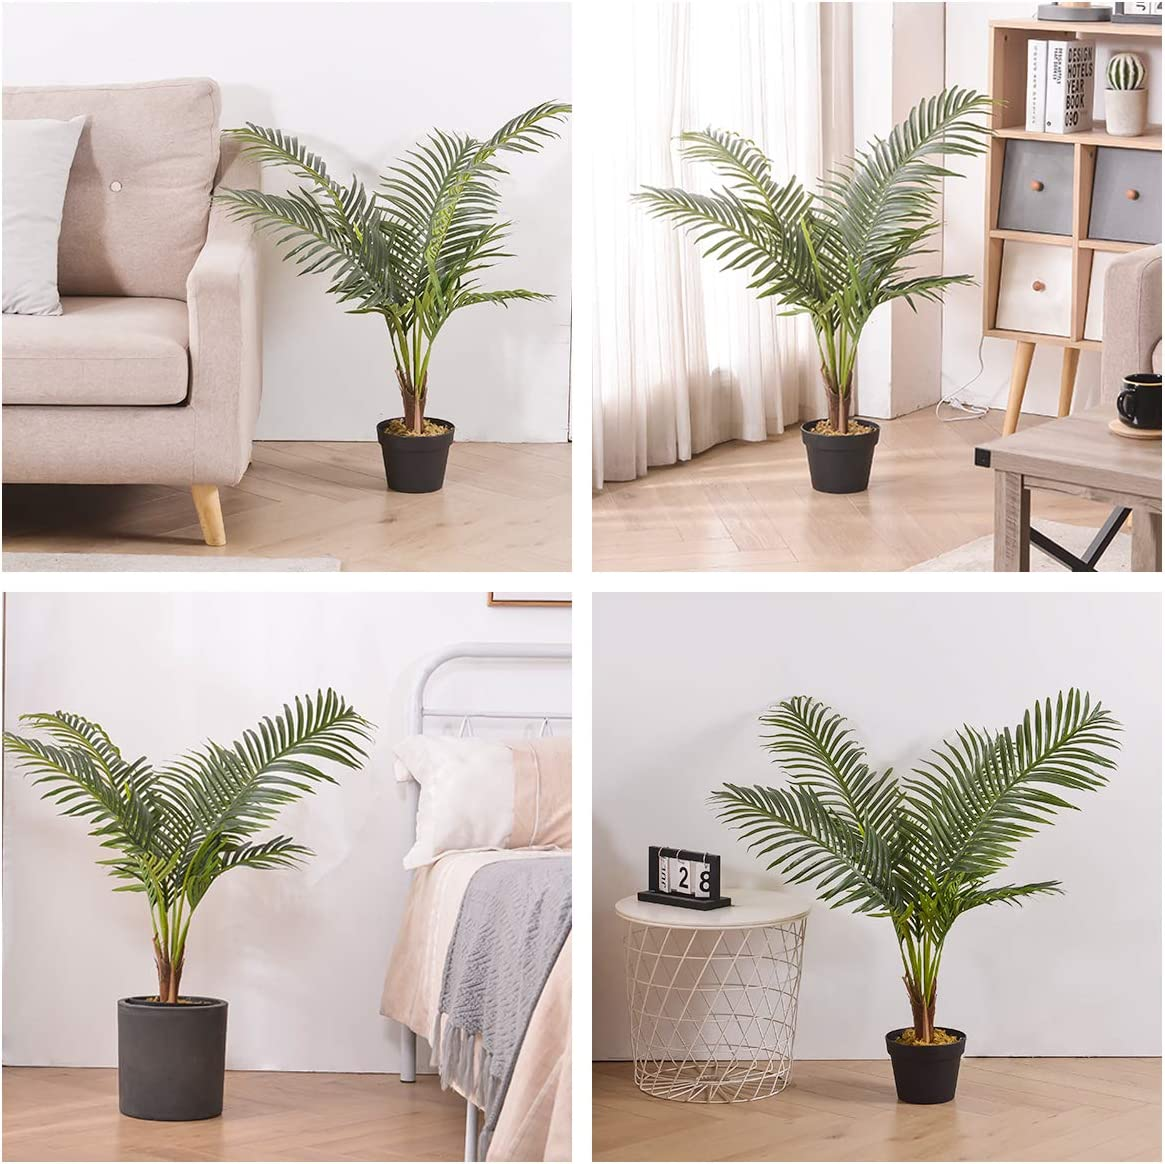 Green 39 Fake Paradise Palm Trees Kelivol Artificial Areca Palm Trees Artificial Trees In Pots For Home Decor Indoor 2 Pack Artificial Dried Flora Home Decor